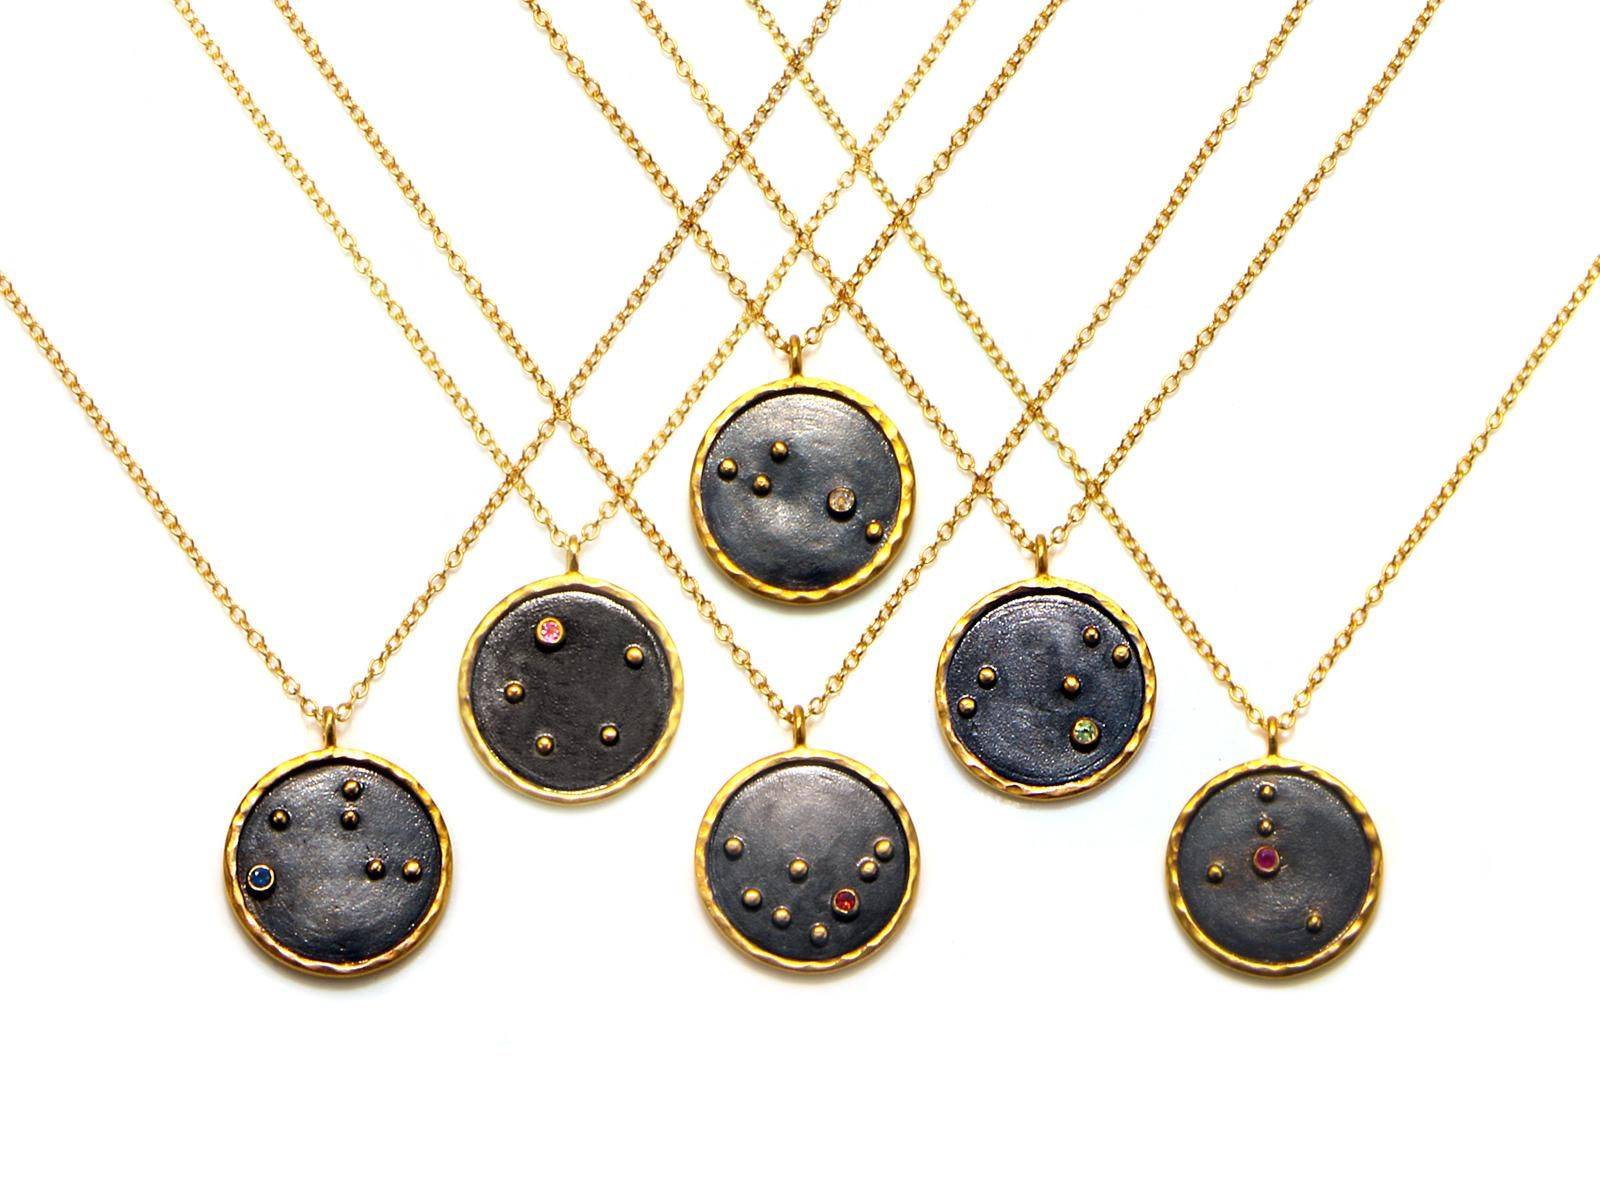 Zodiac necklace jewlery and jewel